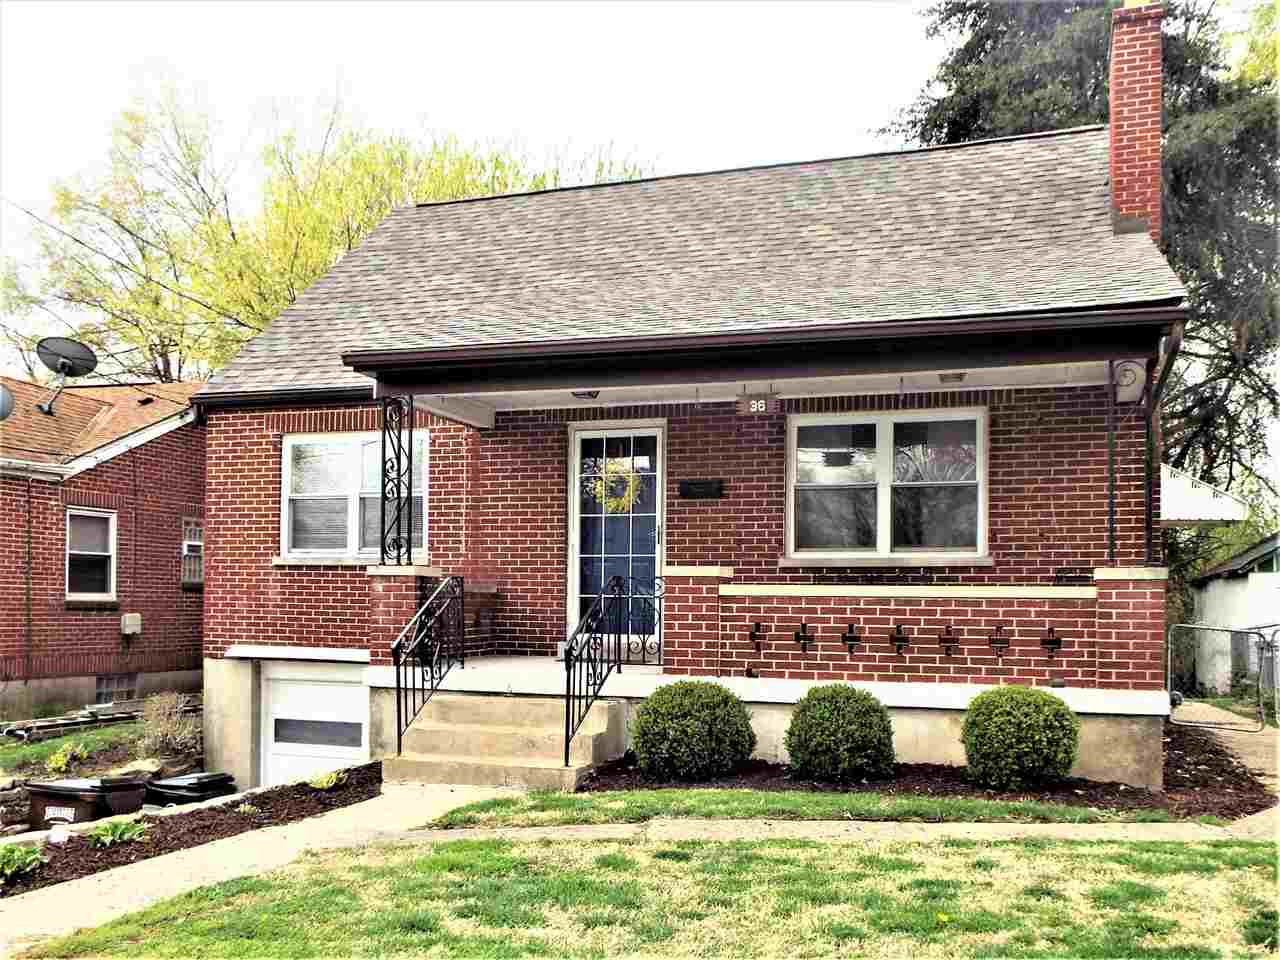 Photo 1 for 36 Eastern Ave Elsmere, KY 41018